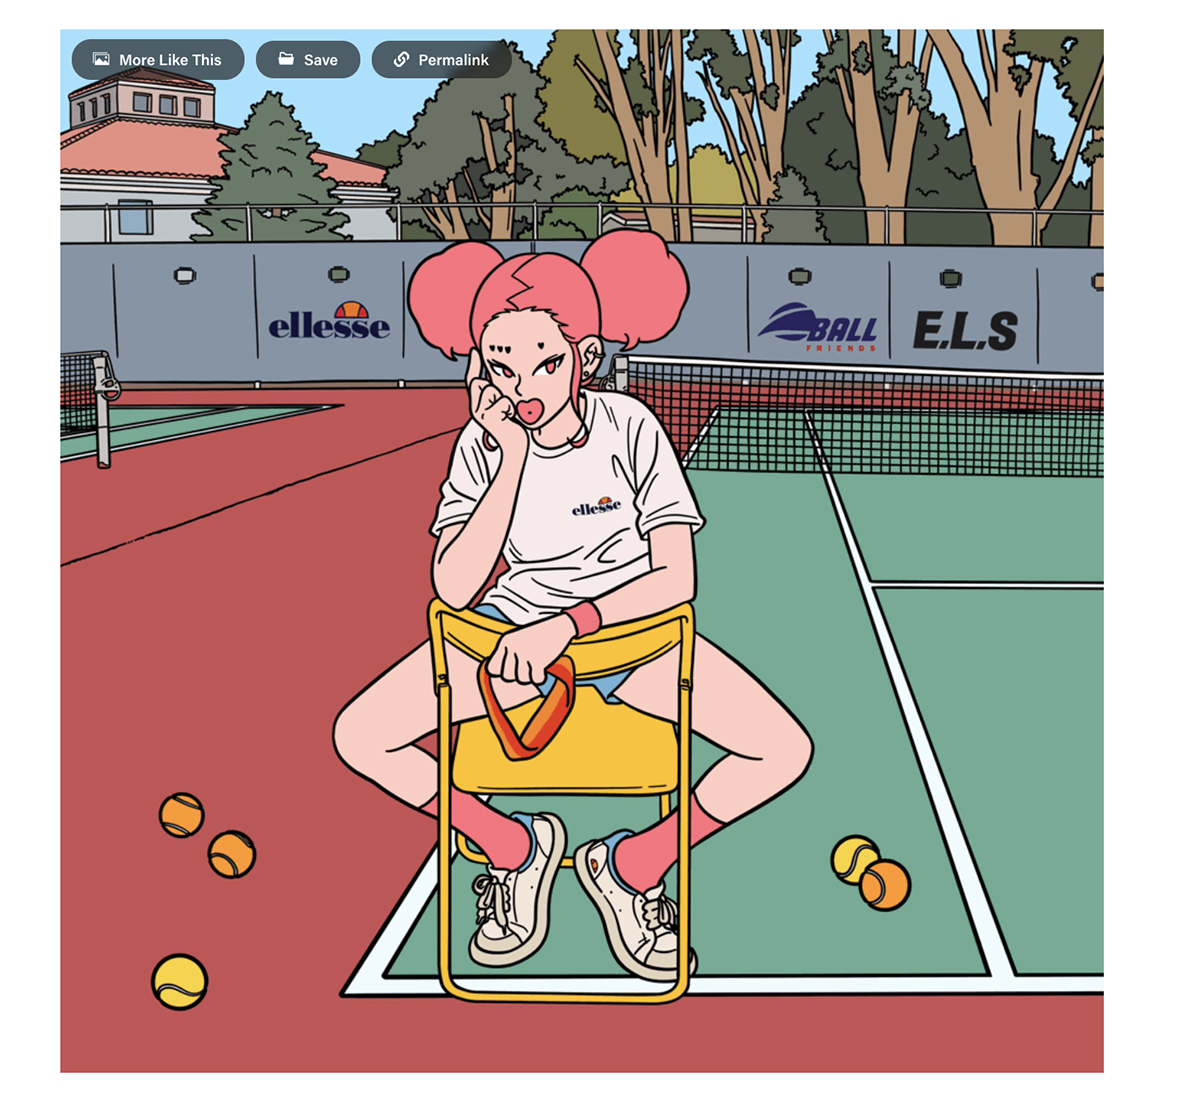 An illustration of a woman sitting in a chair on a tennis court.